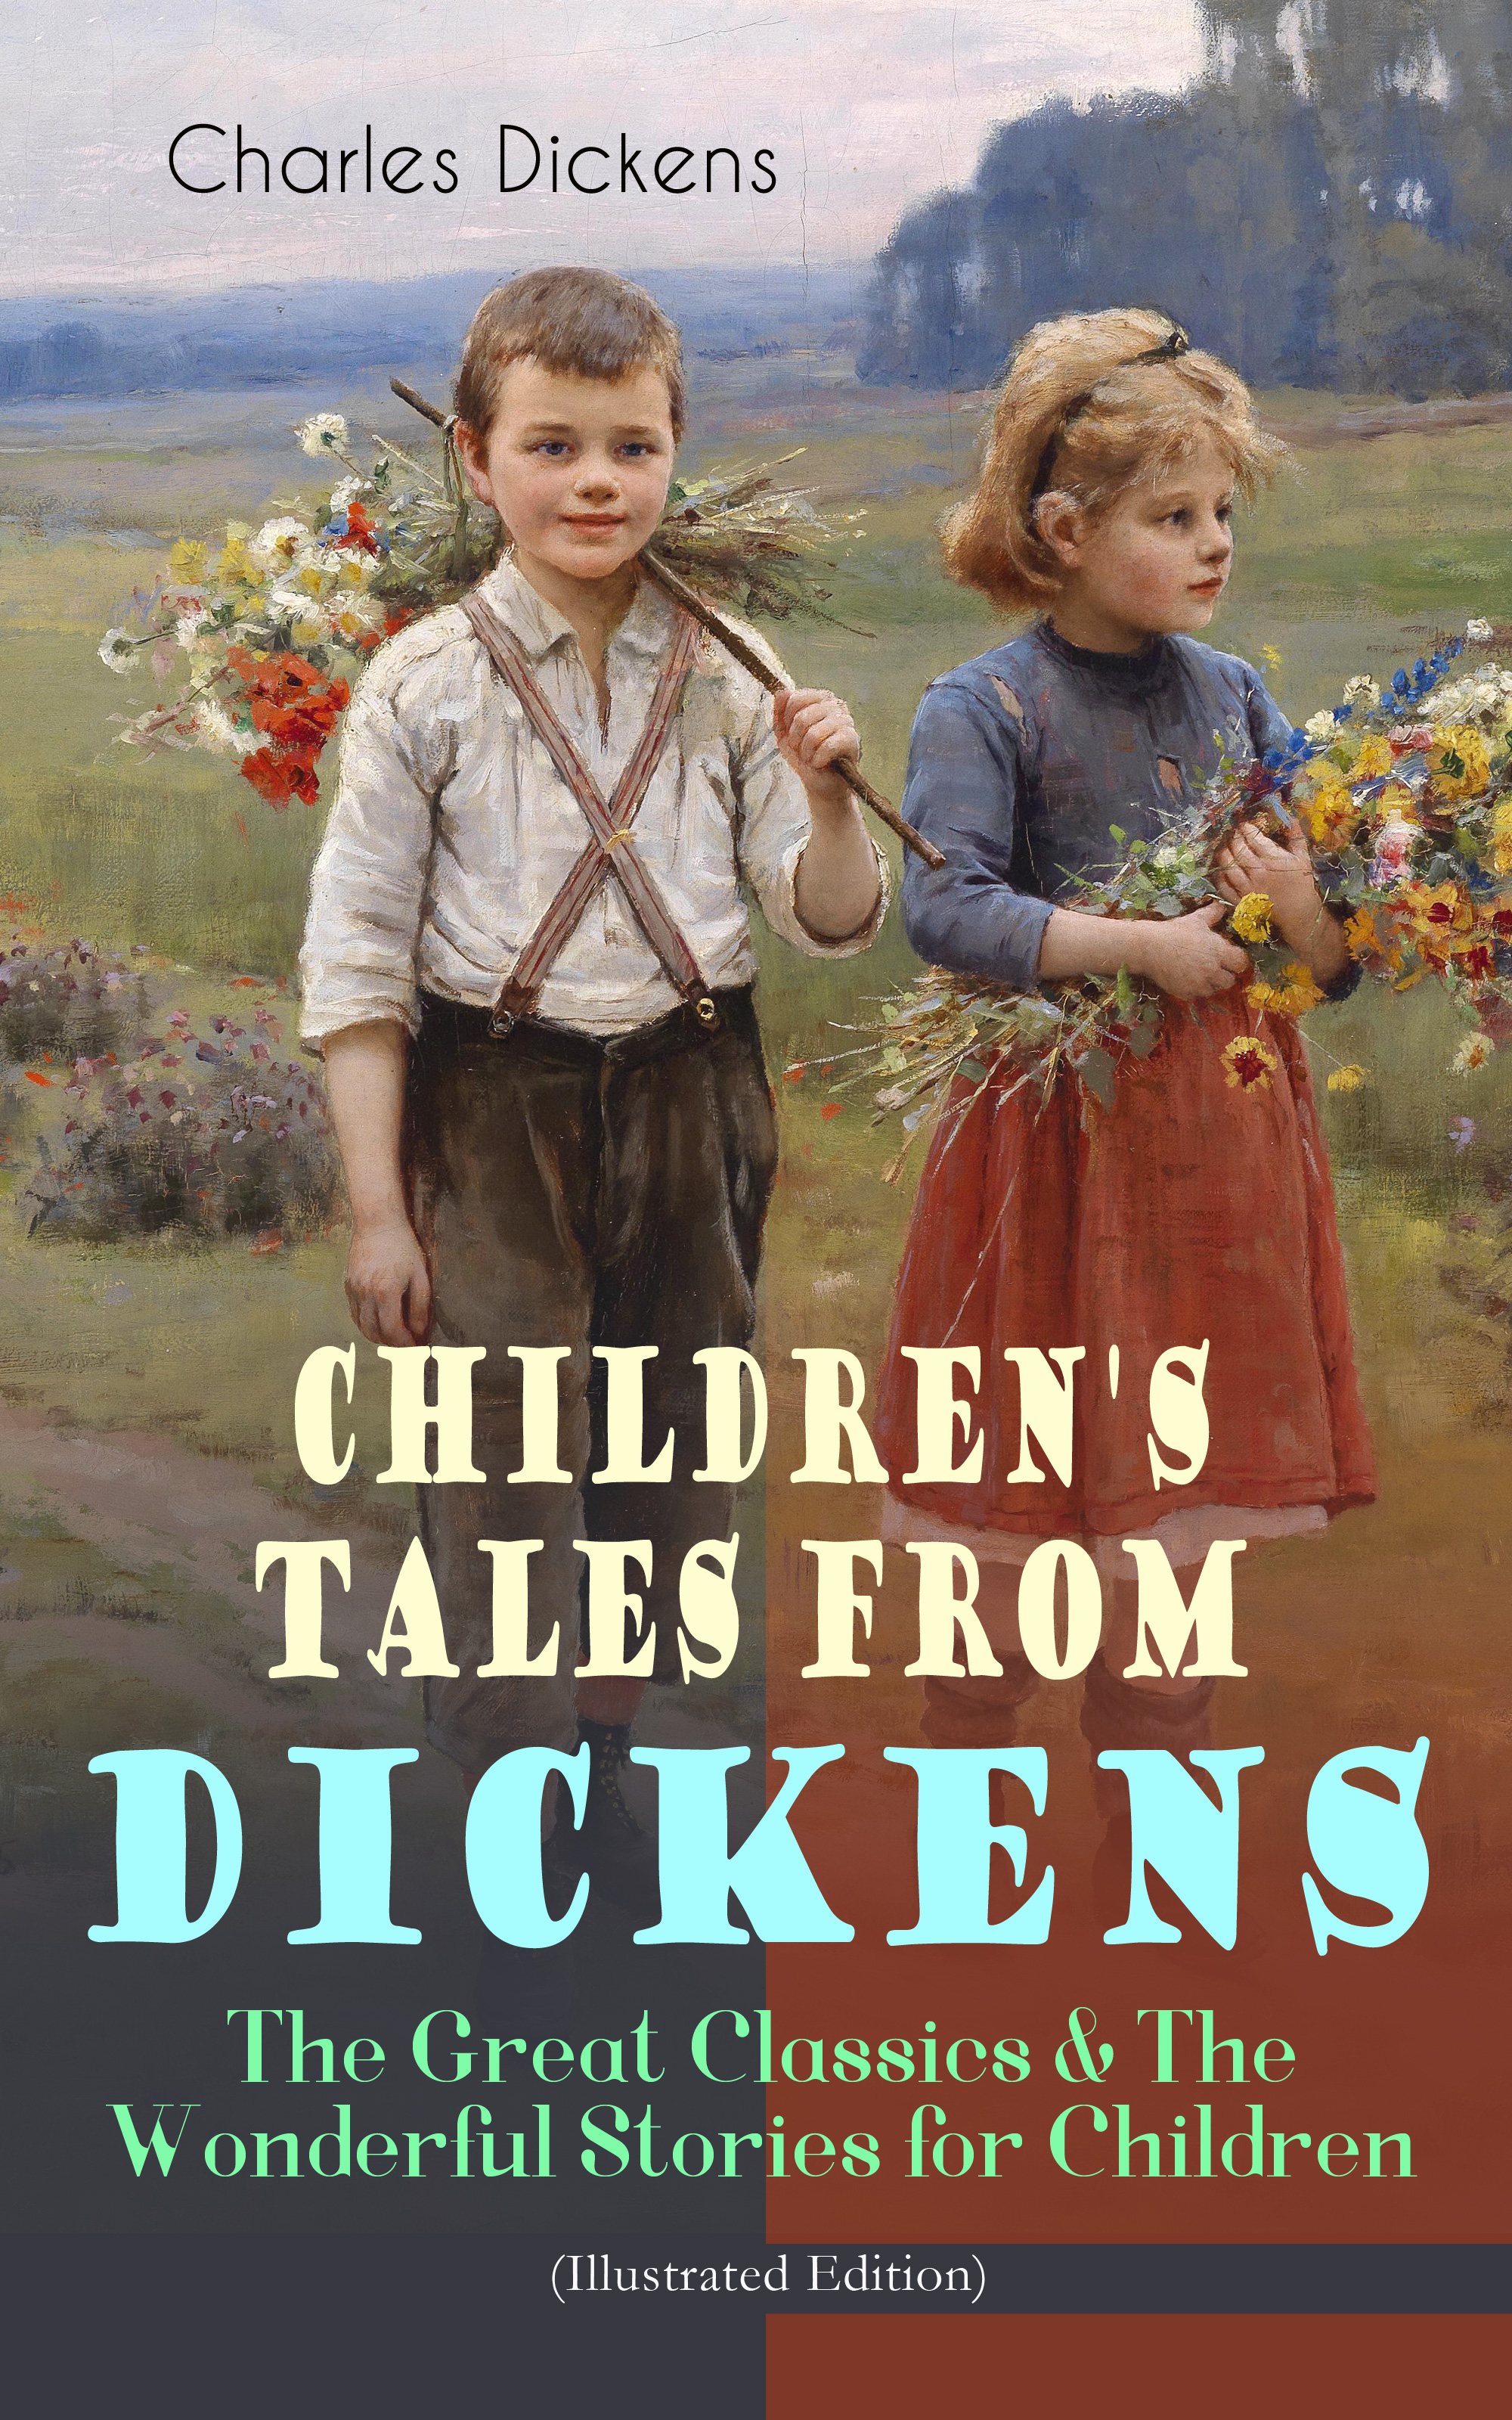 Charles Dickens Children's Tales from Dickens – The Great Classics & The Wonderful Stories for Children (Illustrated Edition) walter scott tales of my landlord the stories from the scottish highlands illustrated edition